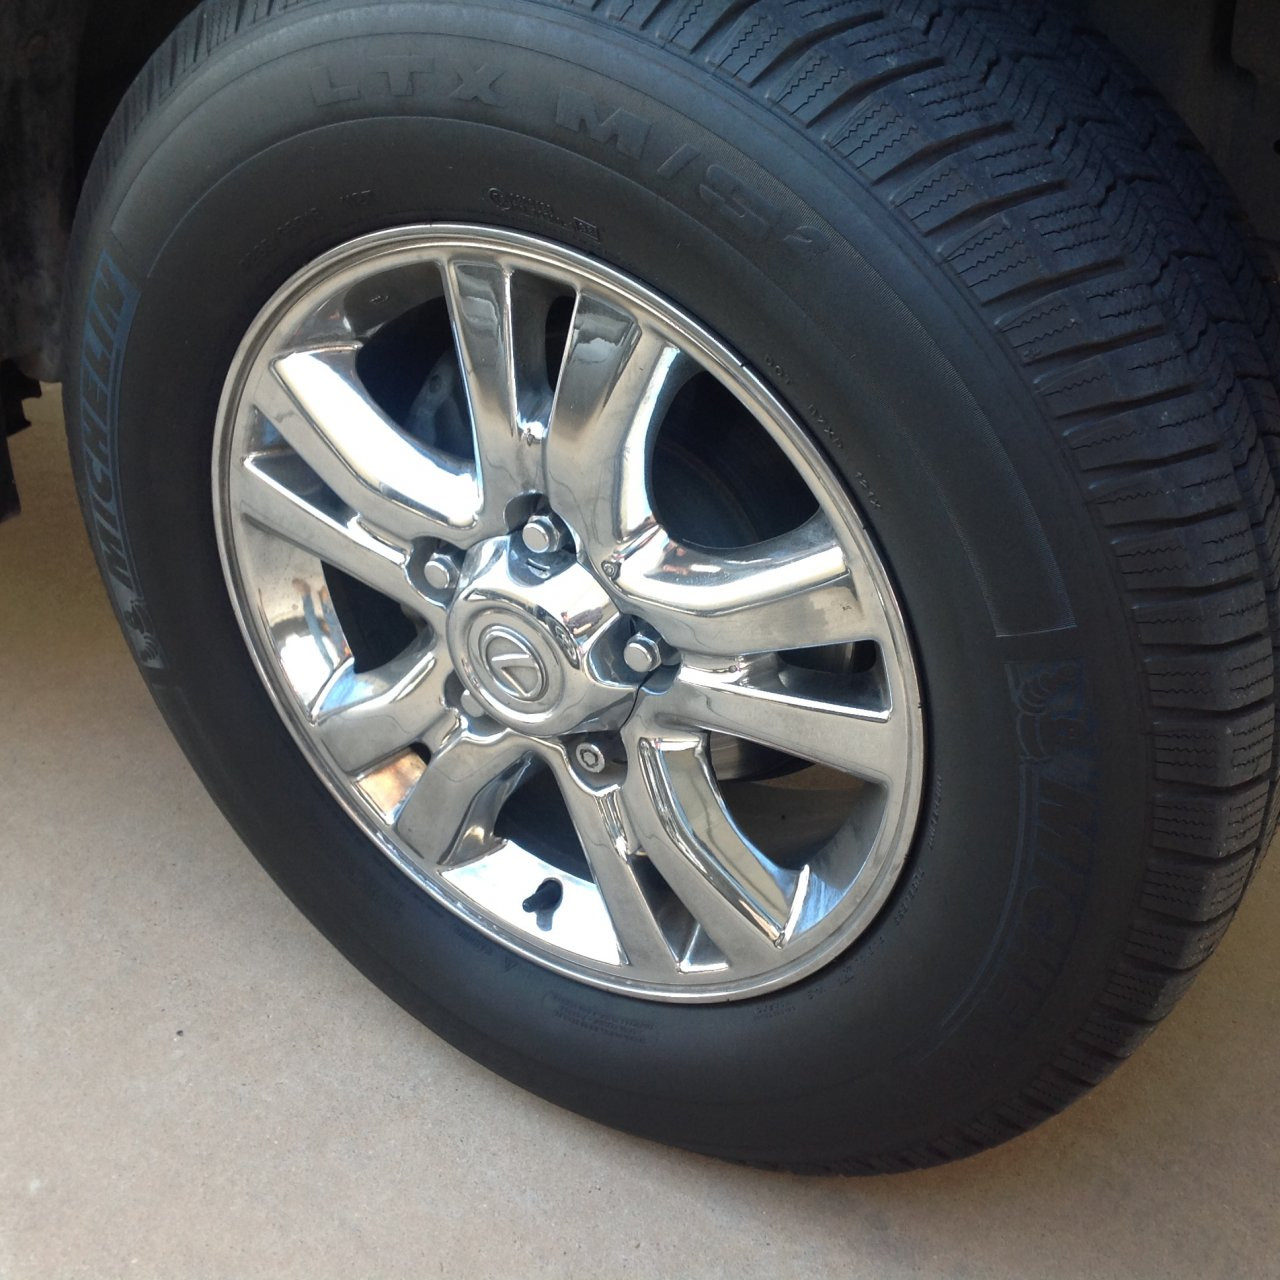 Wanted - Need LX 470 Chrome Wheel(s)